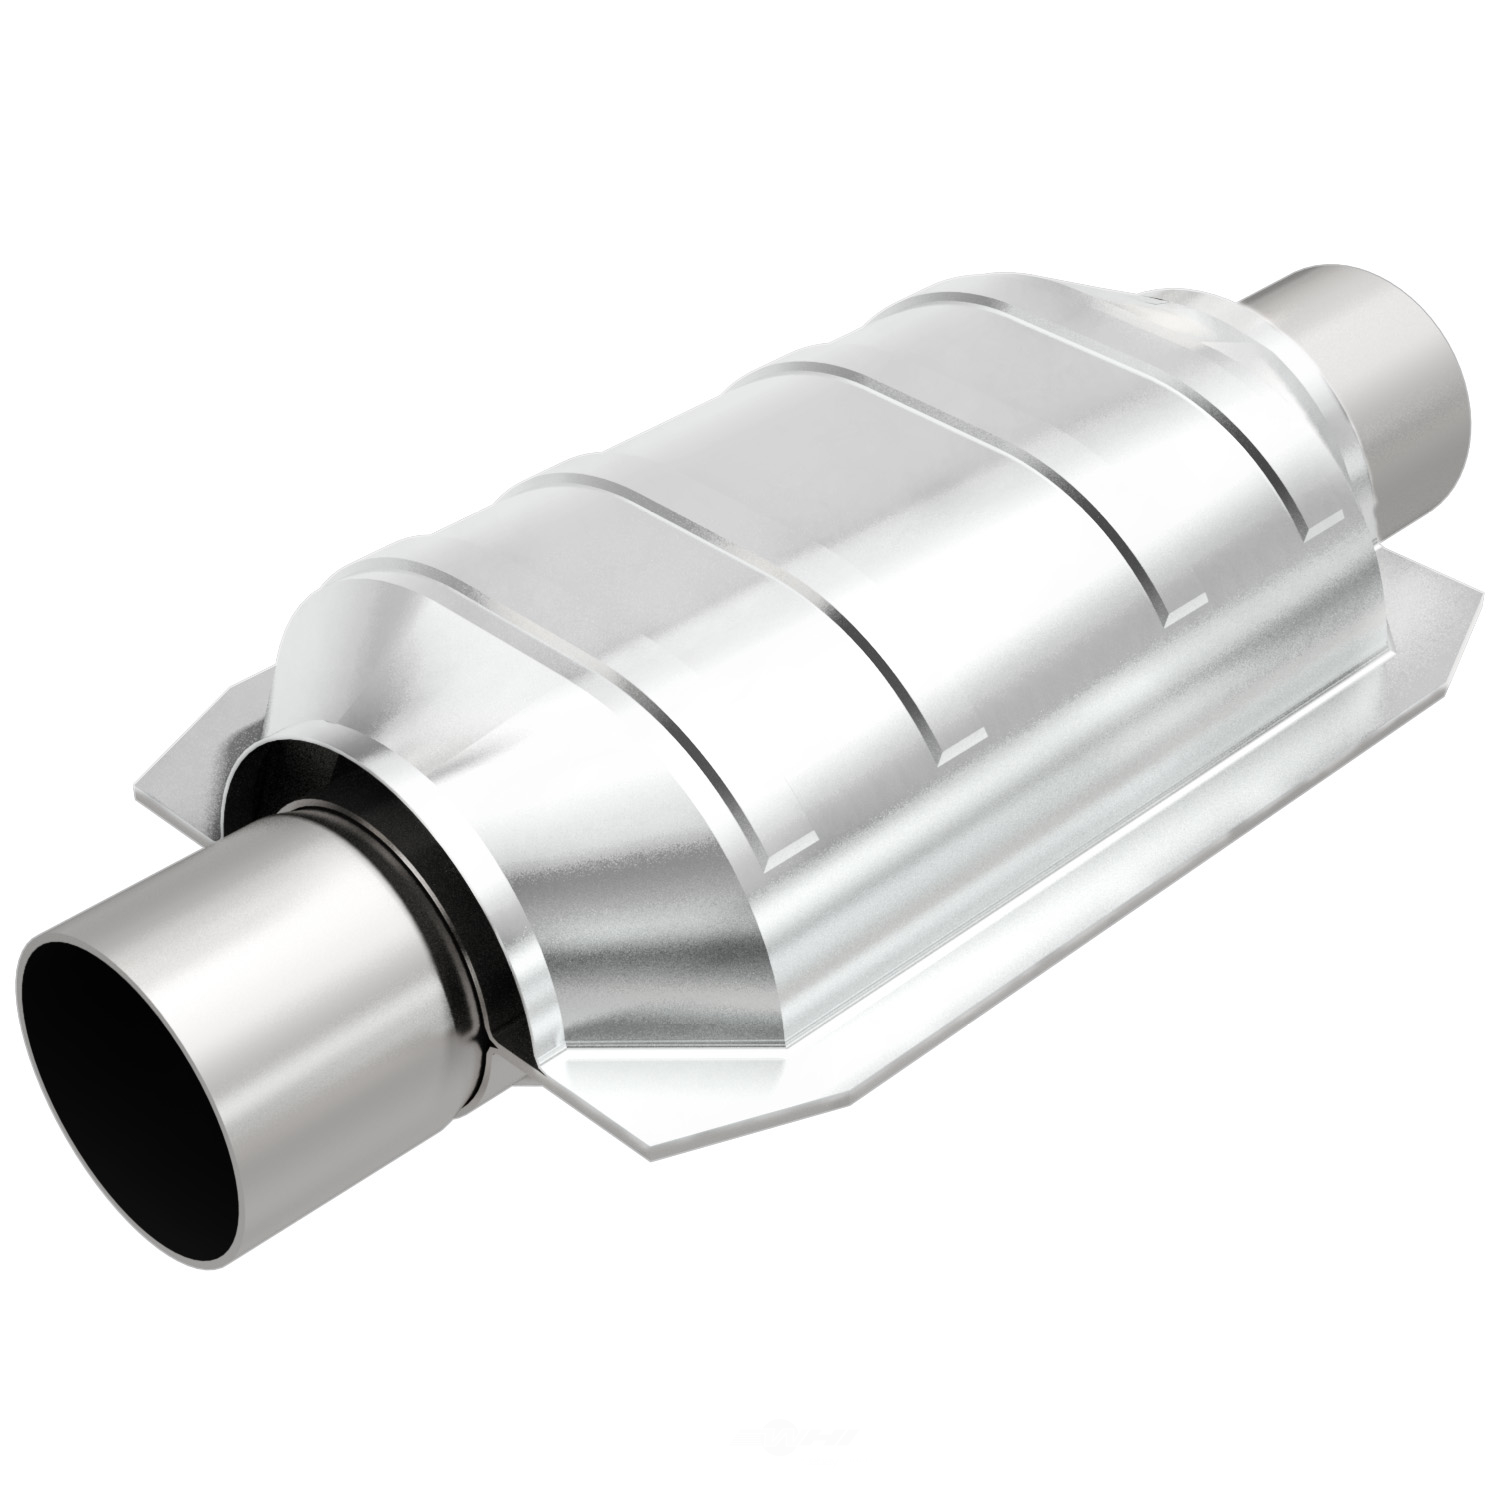 MAGNAFLOW NEW YORK CONVERTER - 2in. Universal California OBDII Catalytic Converter - MNY 441004